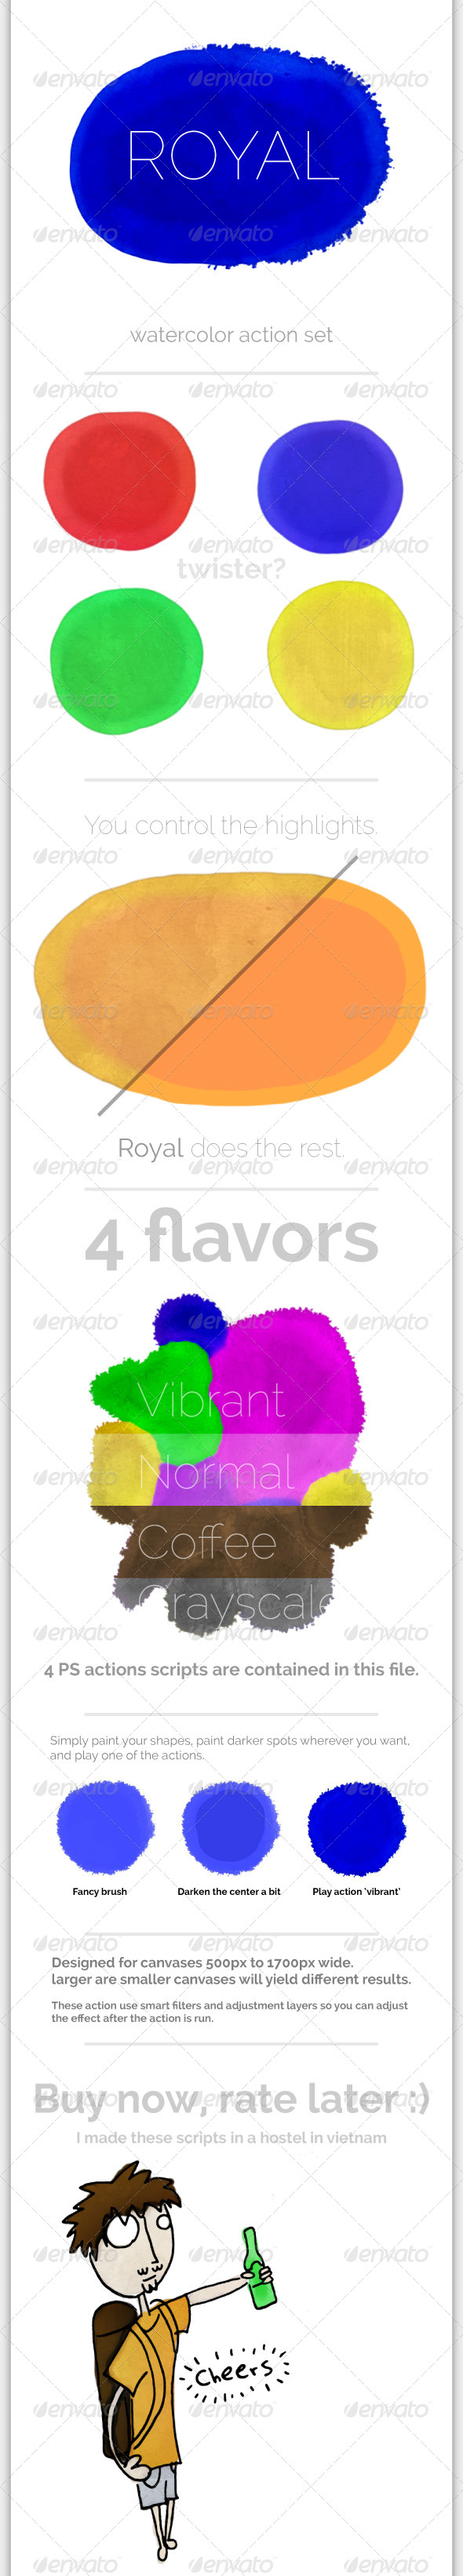 GraphicRiver Royal Watercolor Action Set 6810085